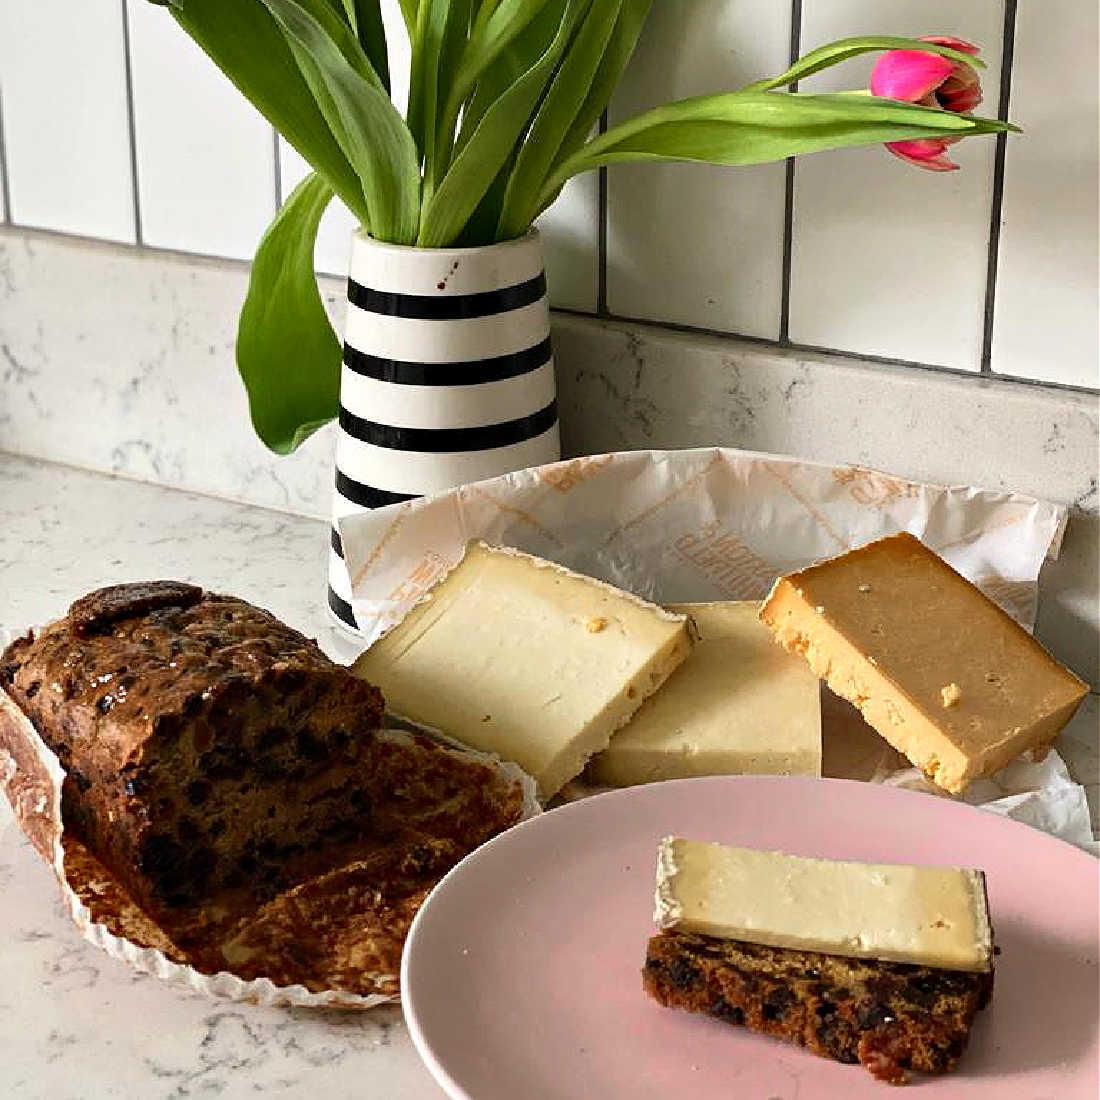 Cheese-and-Fruit-Cake-Easter-Cheese-Low-Res